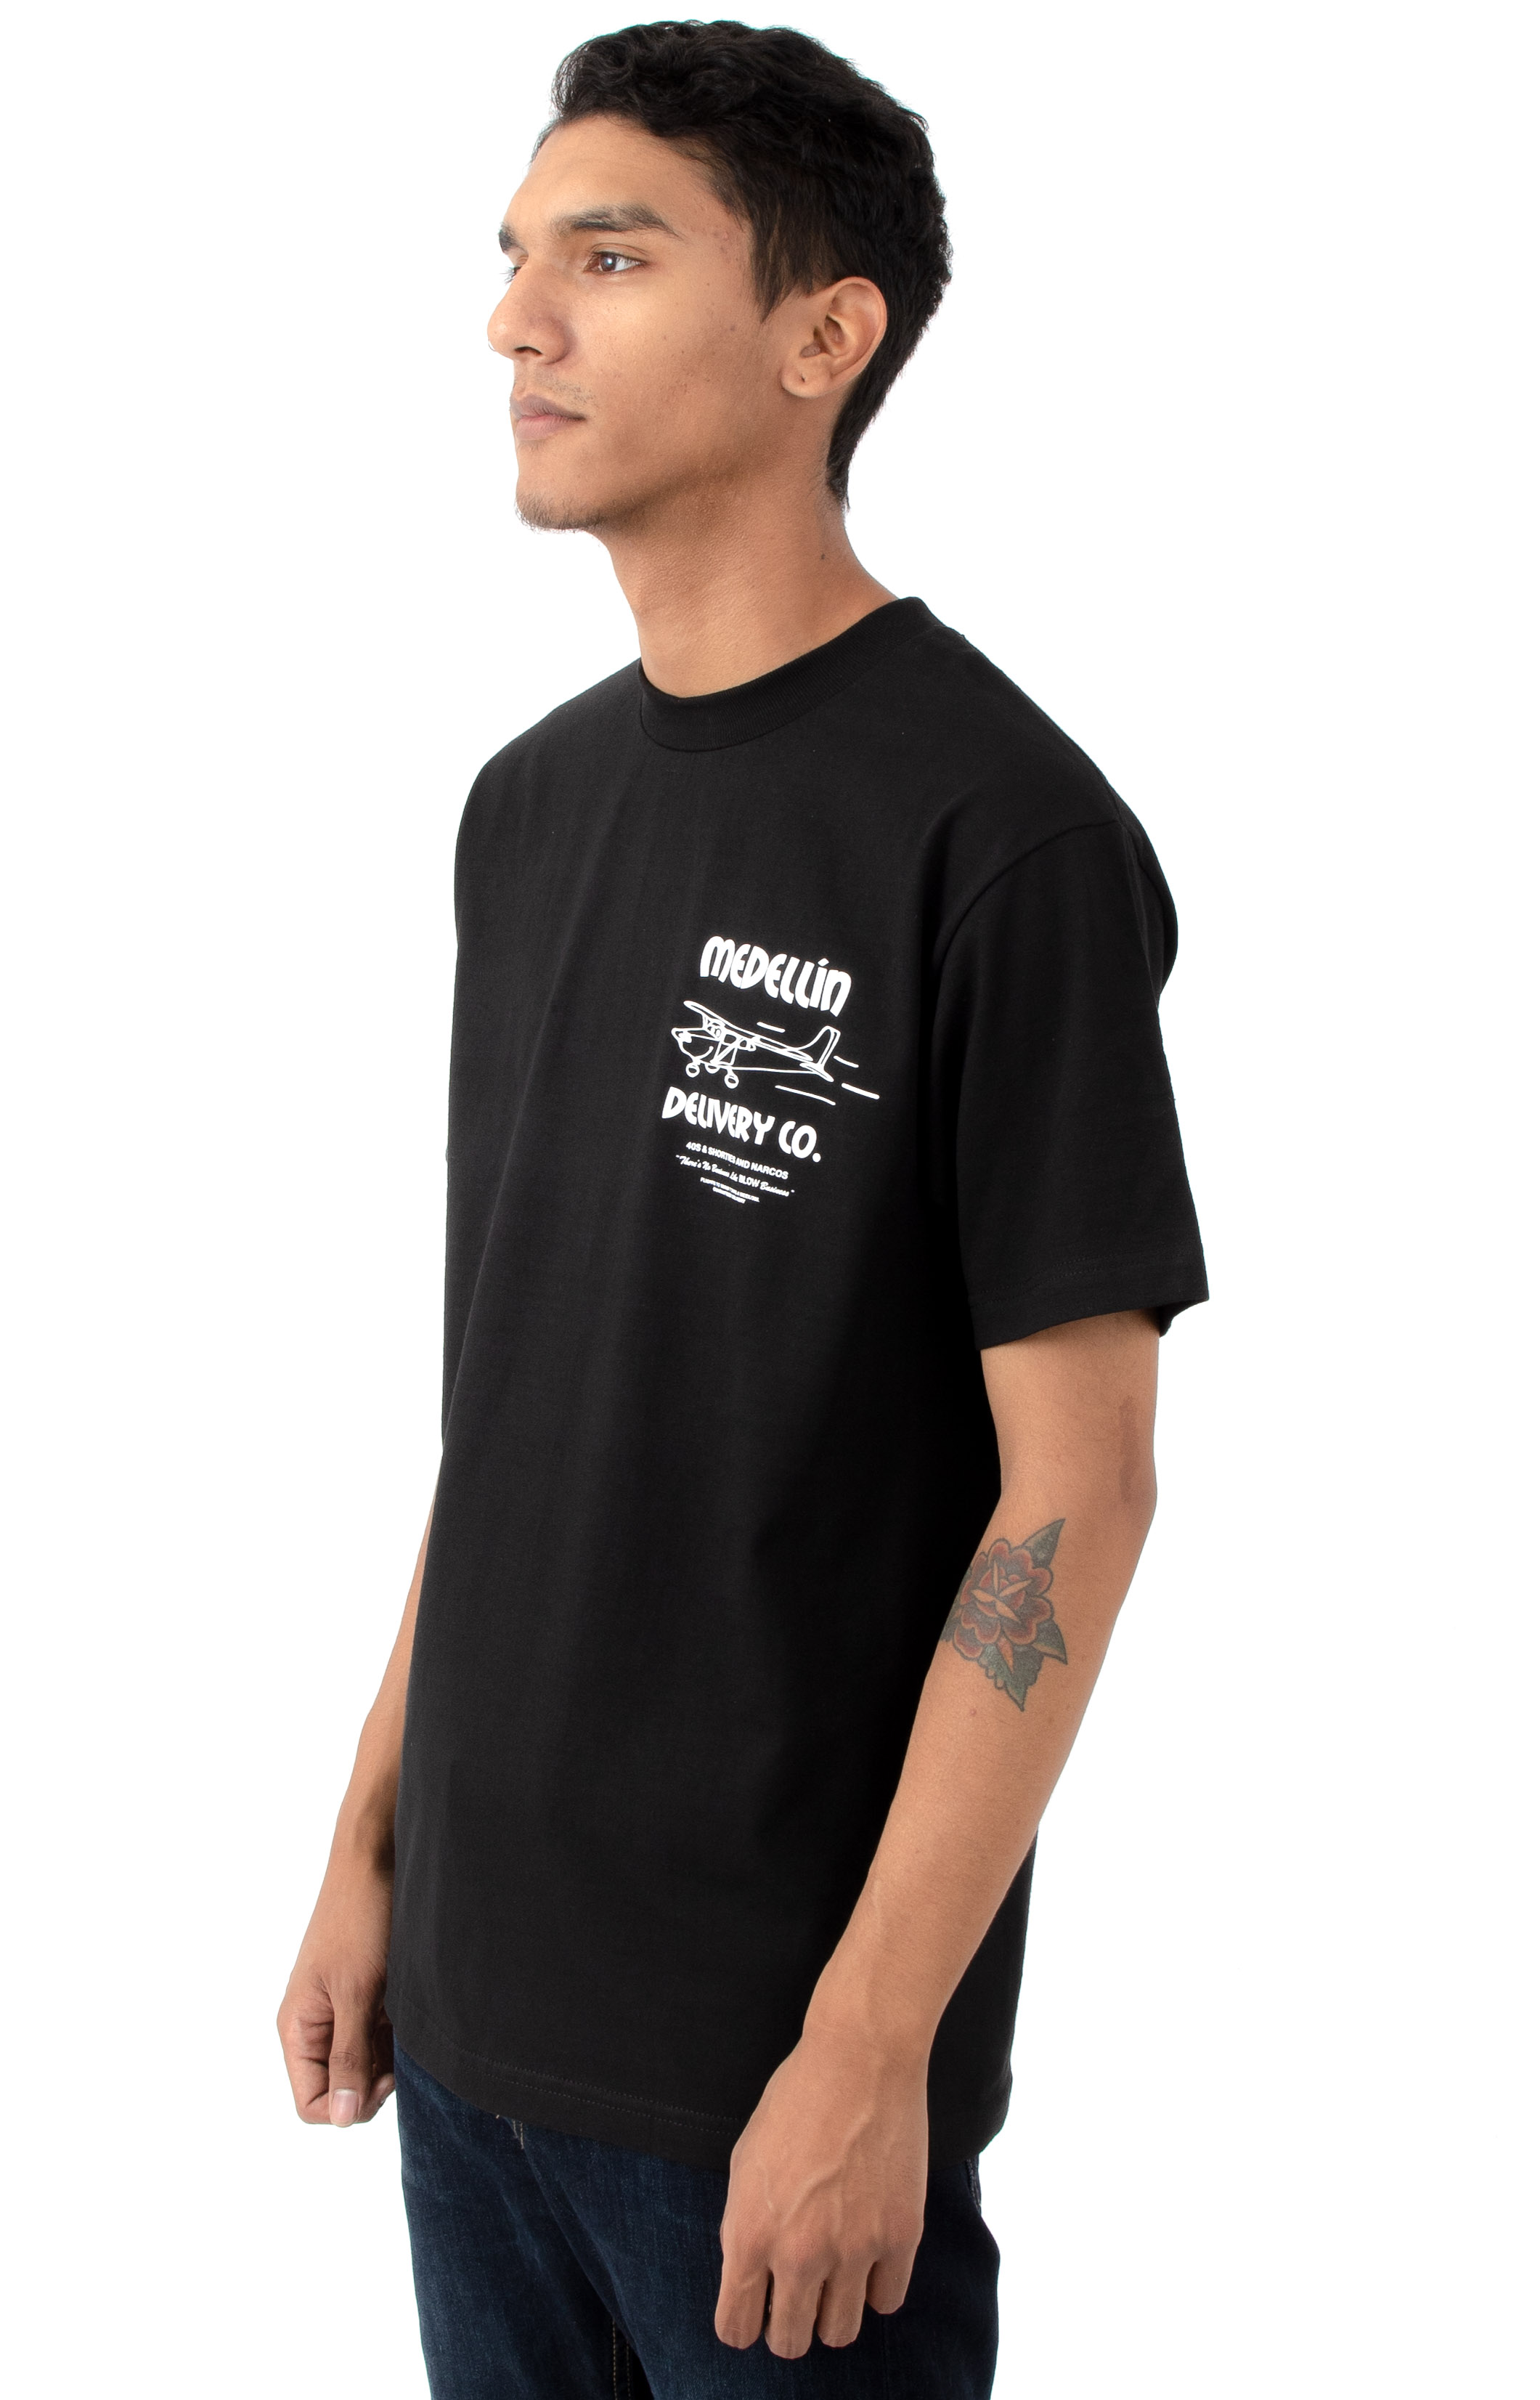 Delivery T-Shirt - Black 3